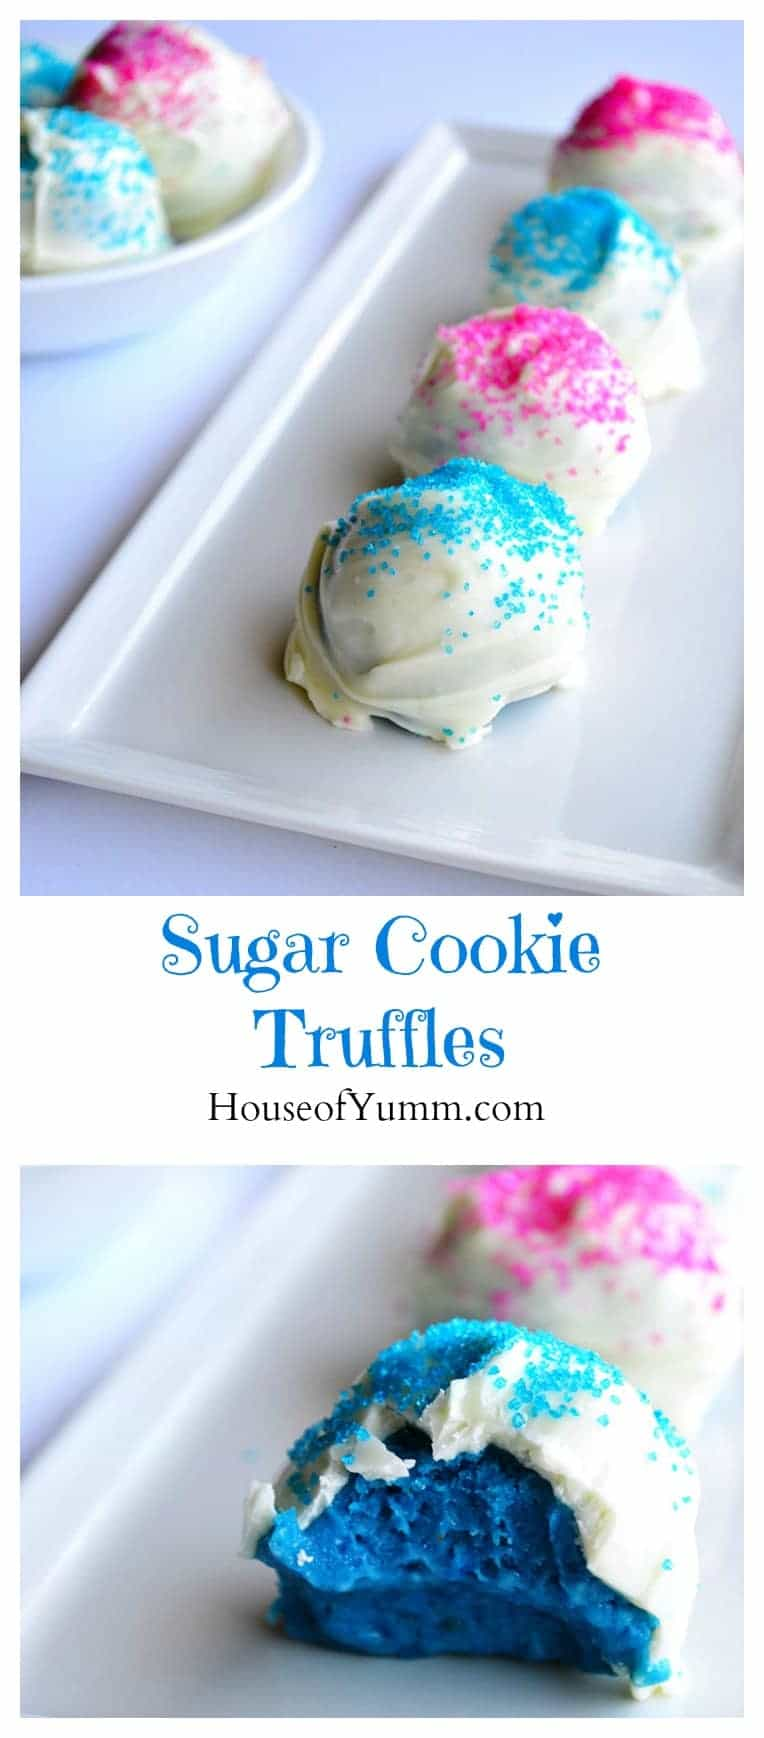 These Sugar Cookie Truffles are easy to make, delicious, and so fun to  decorate for any holiday or a fun gender reveal party!